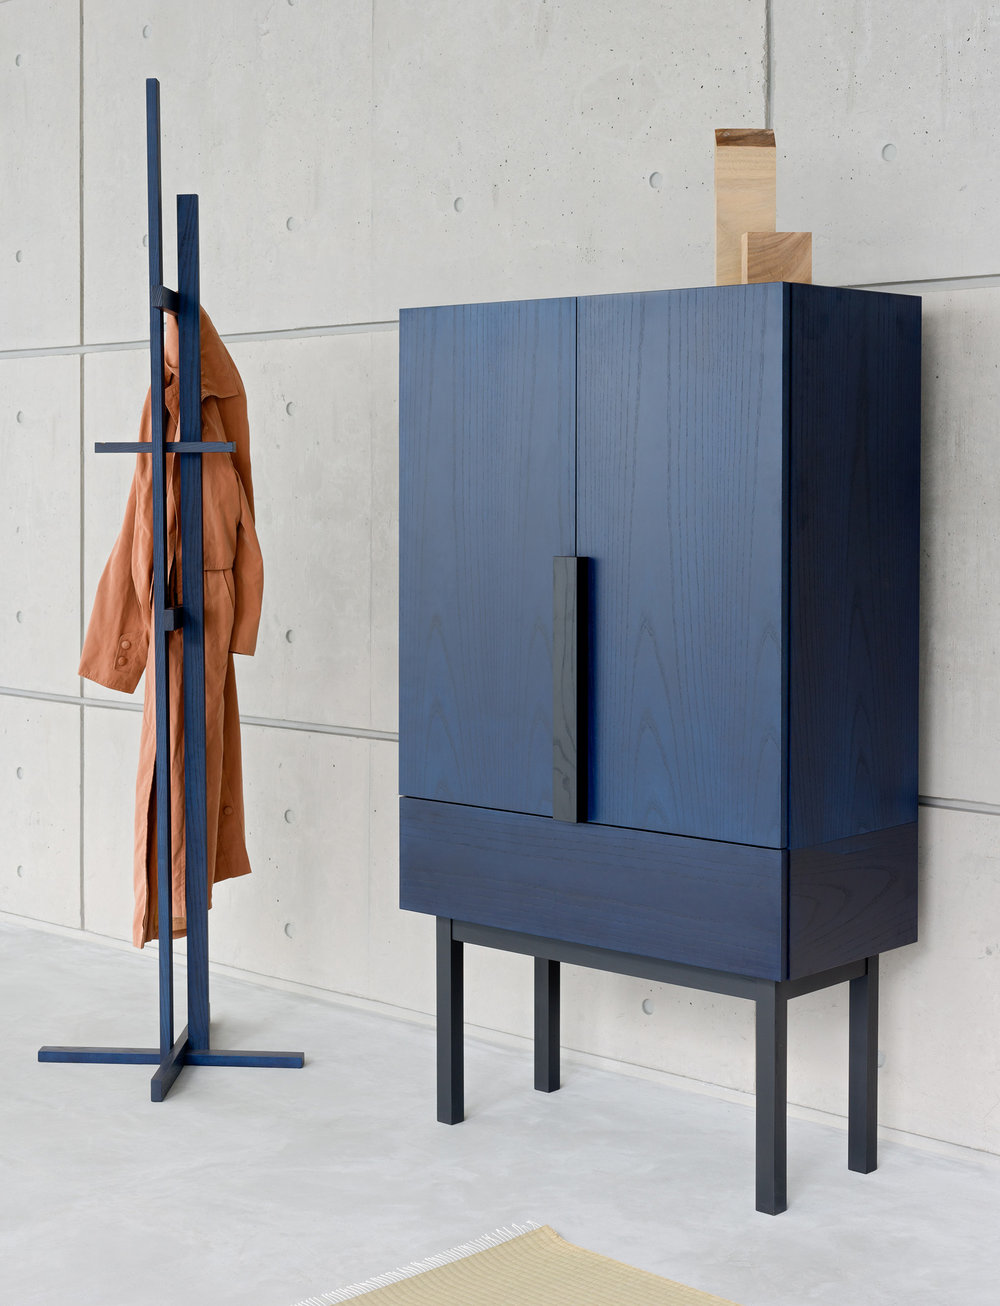 with Elements Coat Stand by Shin Azumi fro Ariake